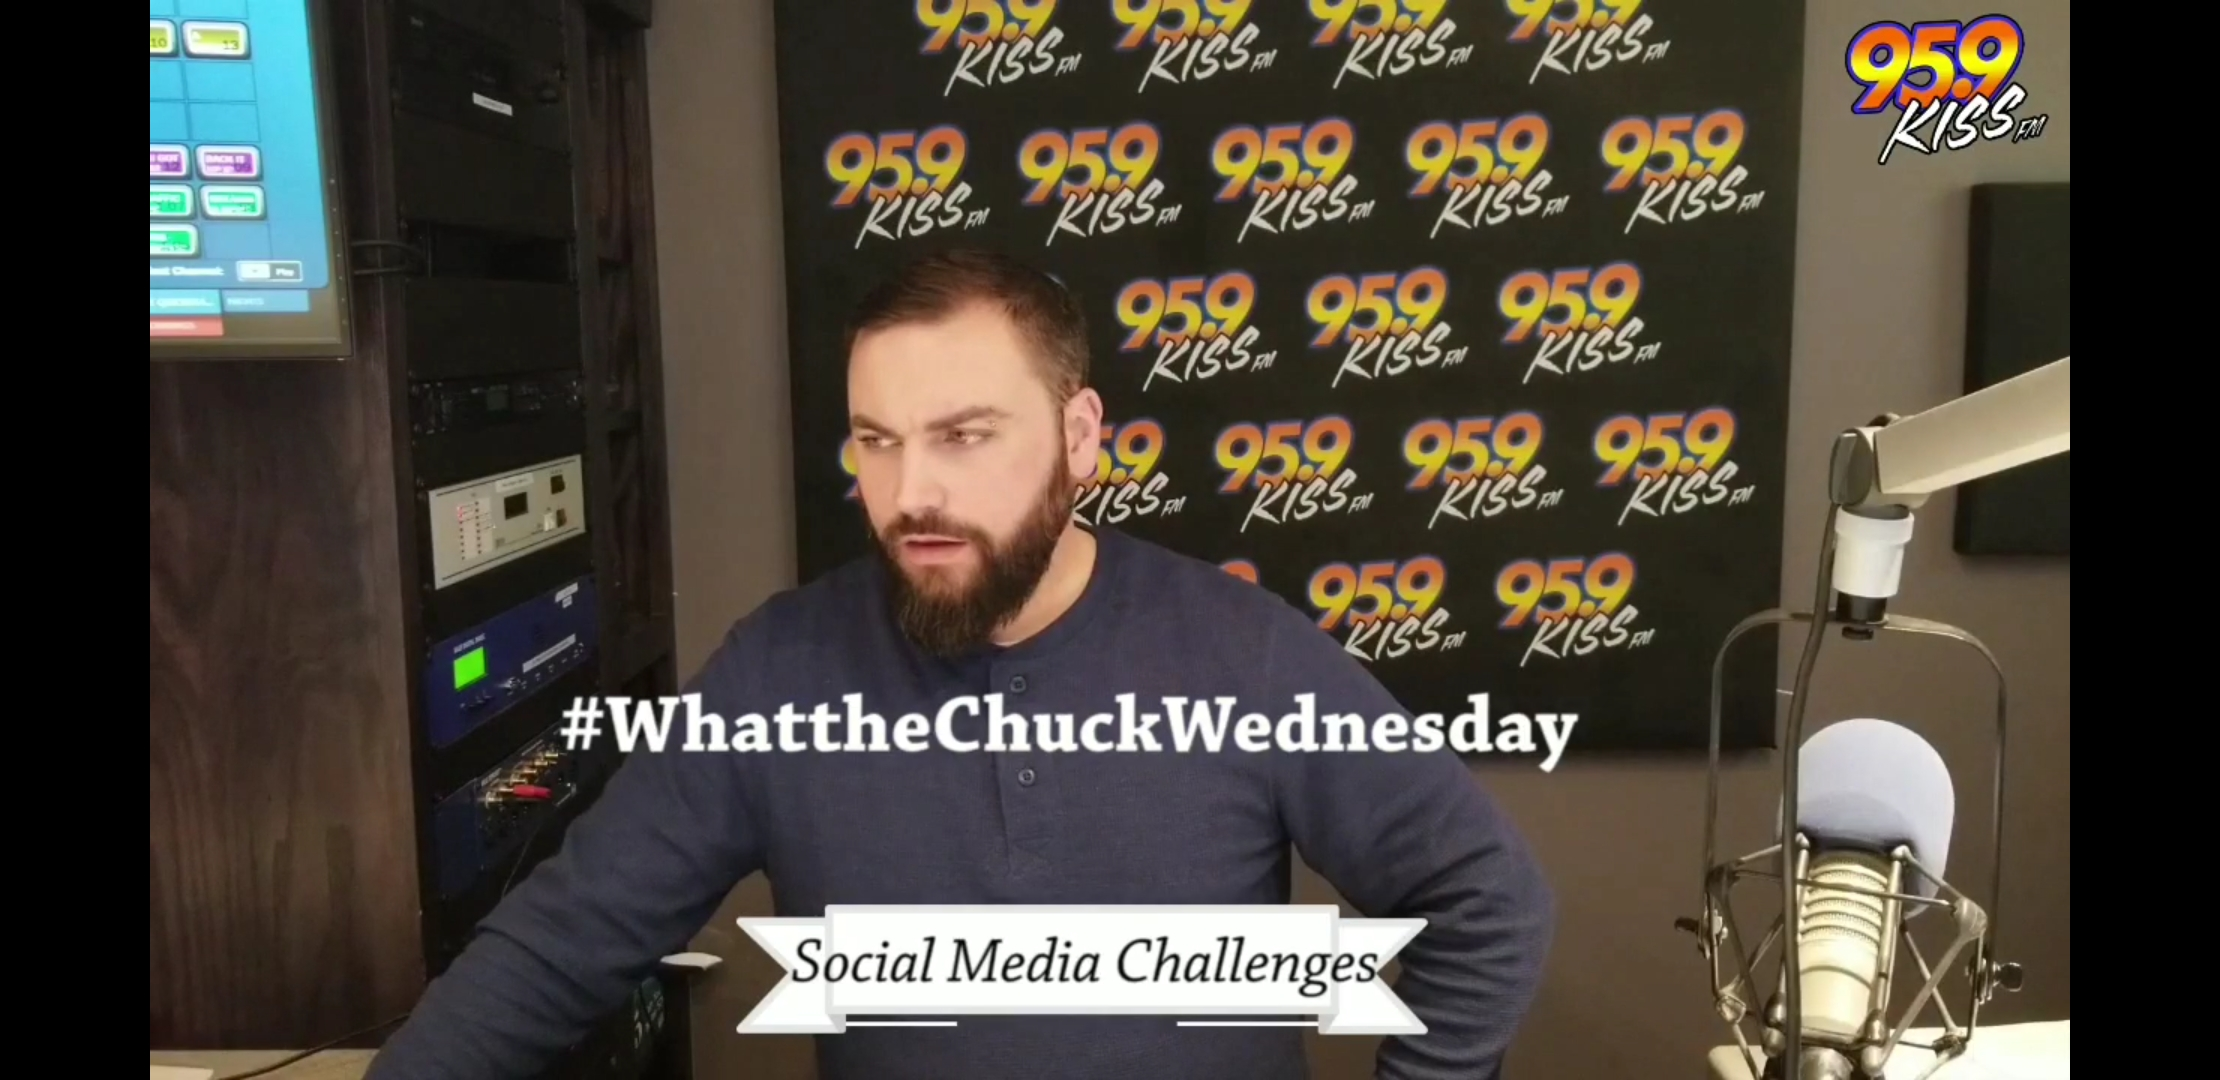 #WhattheChuckWednesday - Social Media Challenges